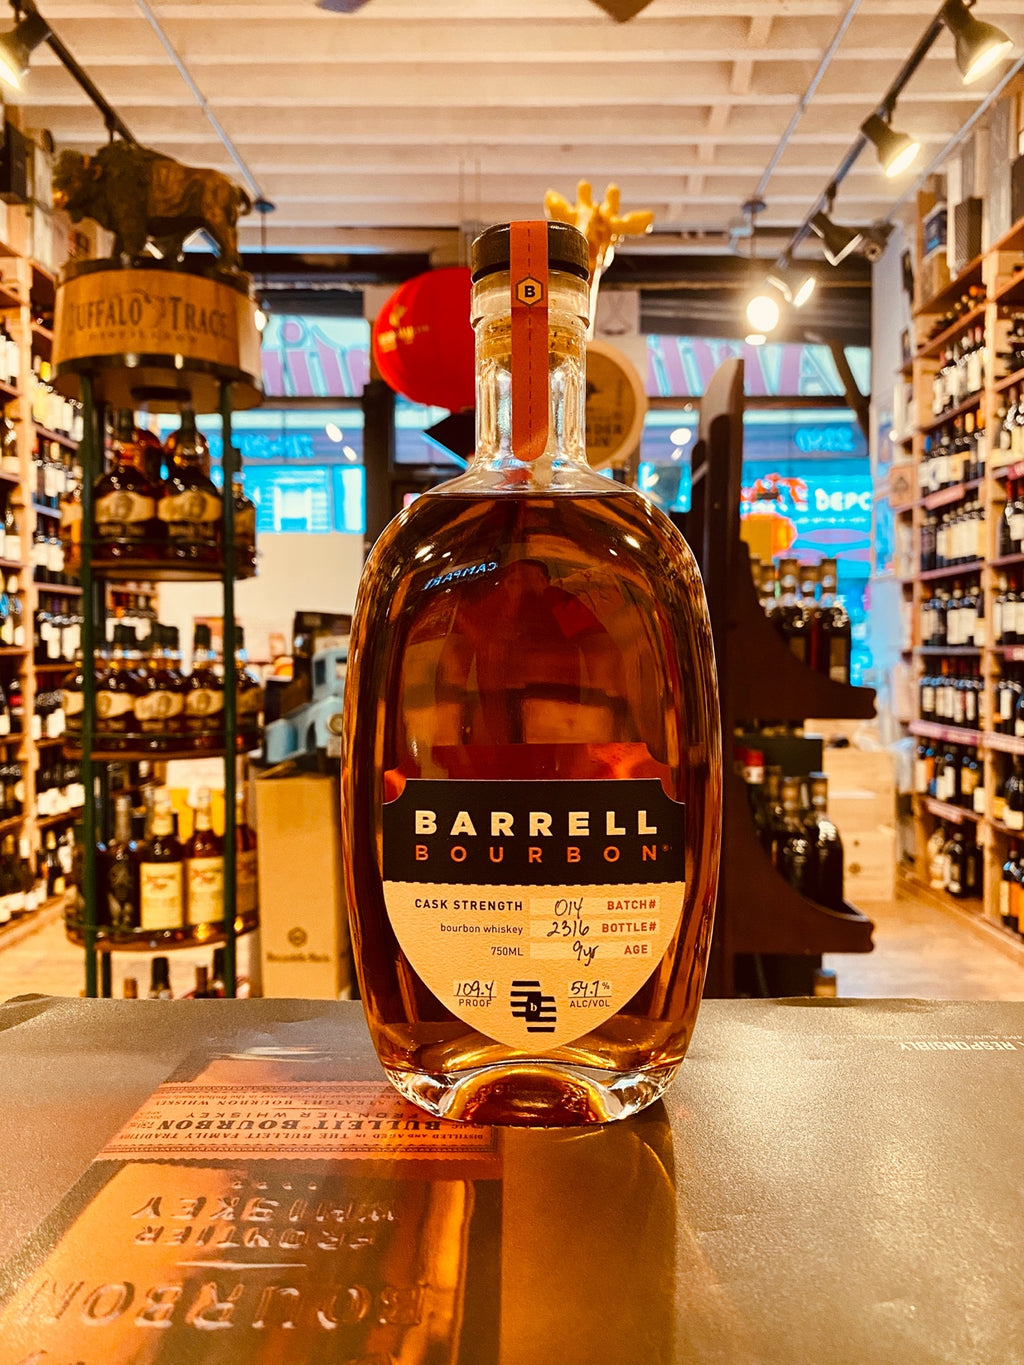 Barrell Bourbon 109.4 750mL